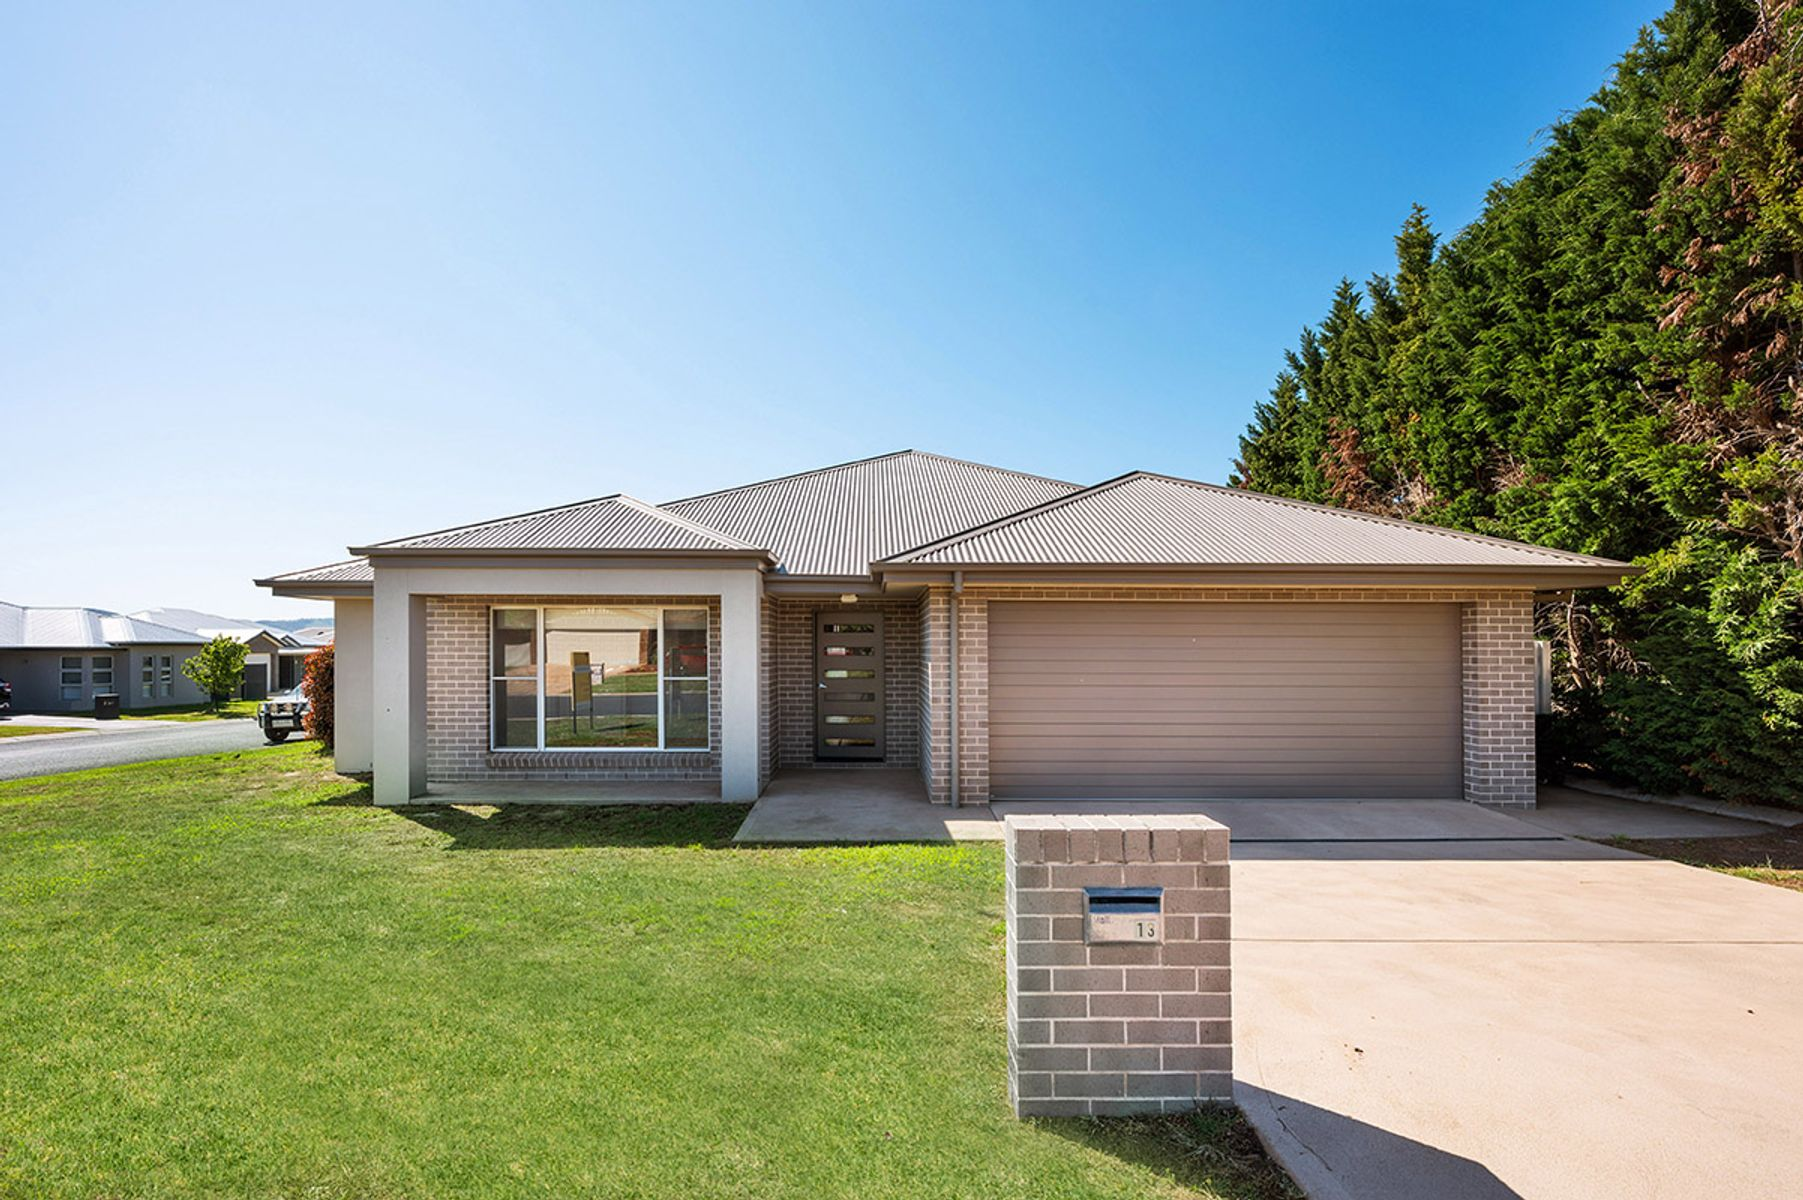 13 Melton Road, Mudgee, NSW 2850